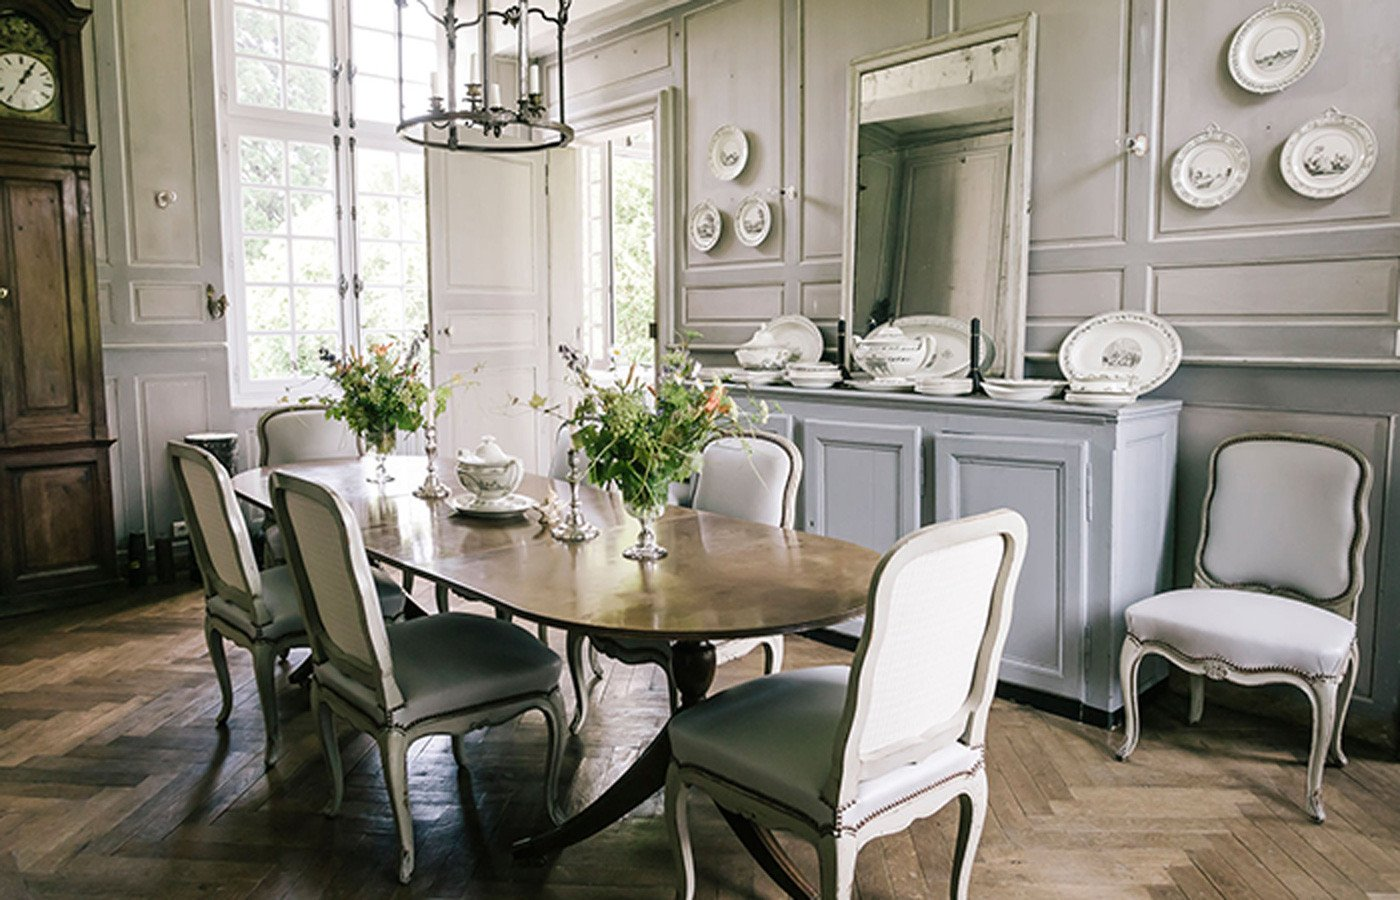 Pictures Of French Country Decor Lovely How to Style Your Home with French Country Decor